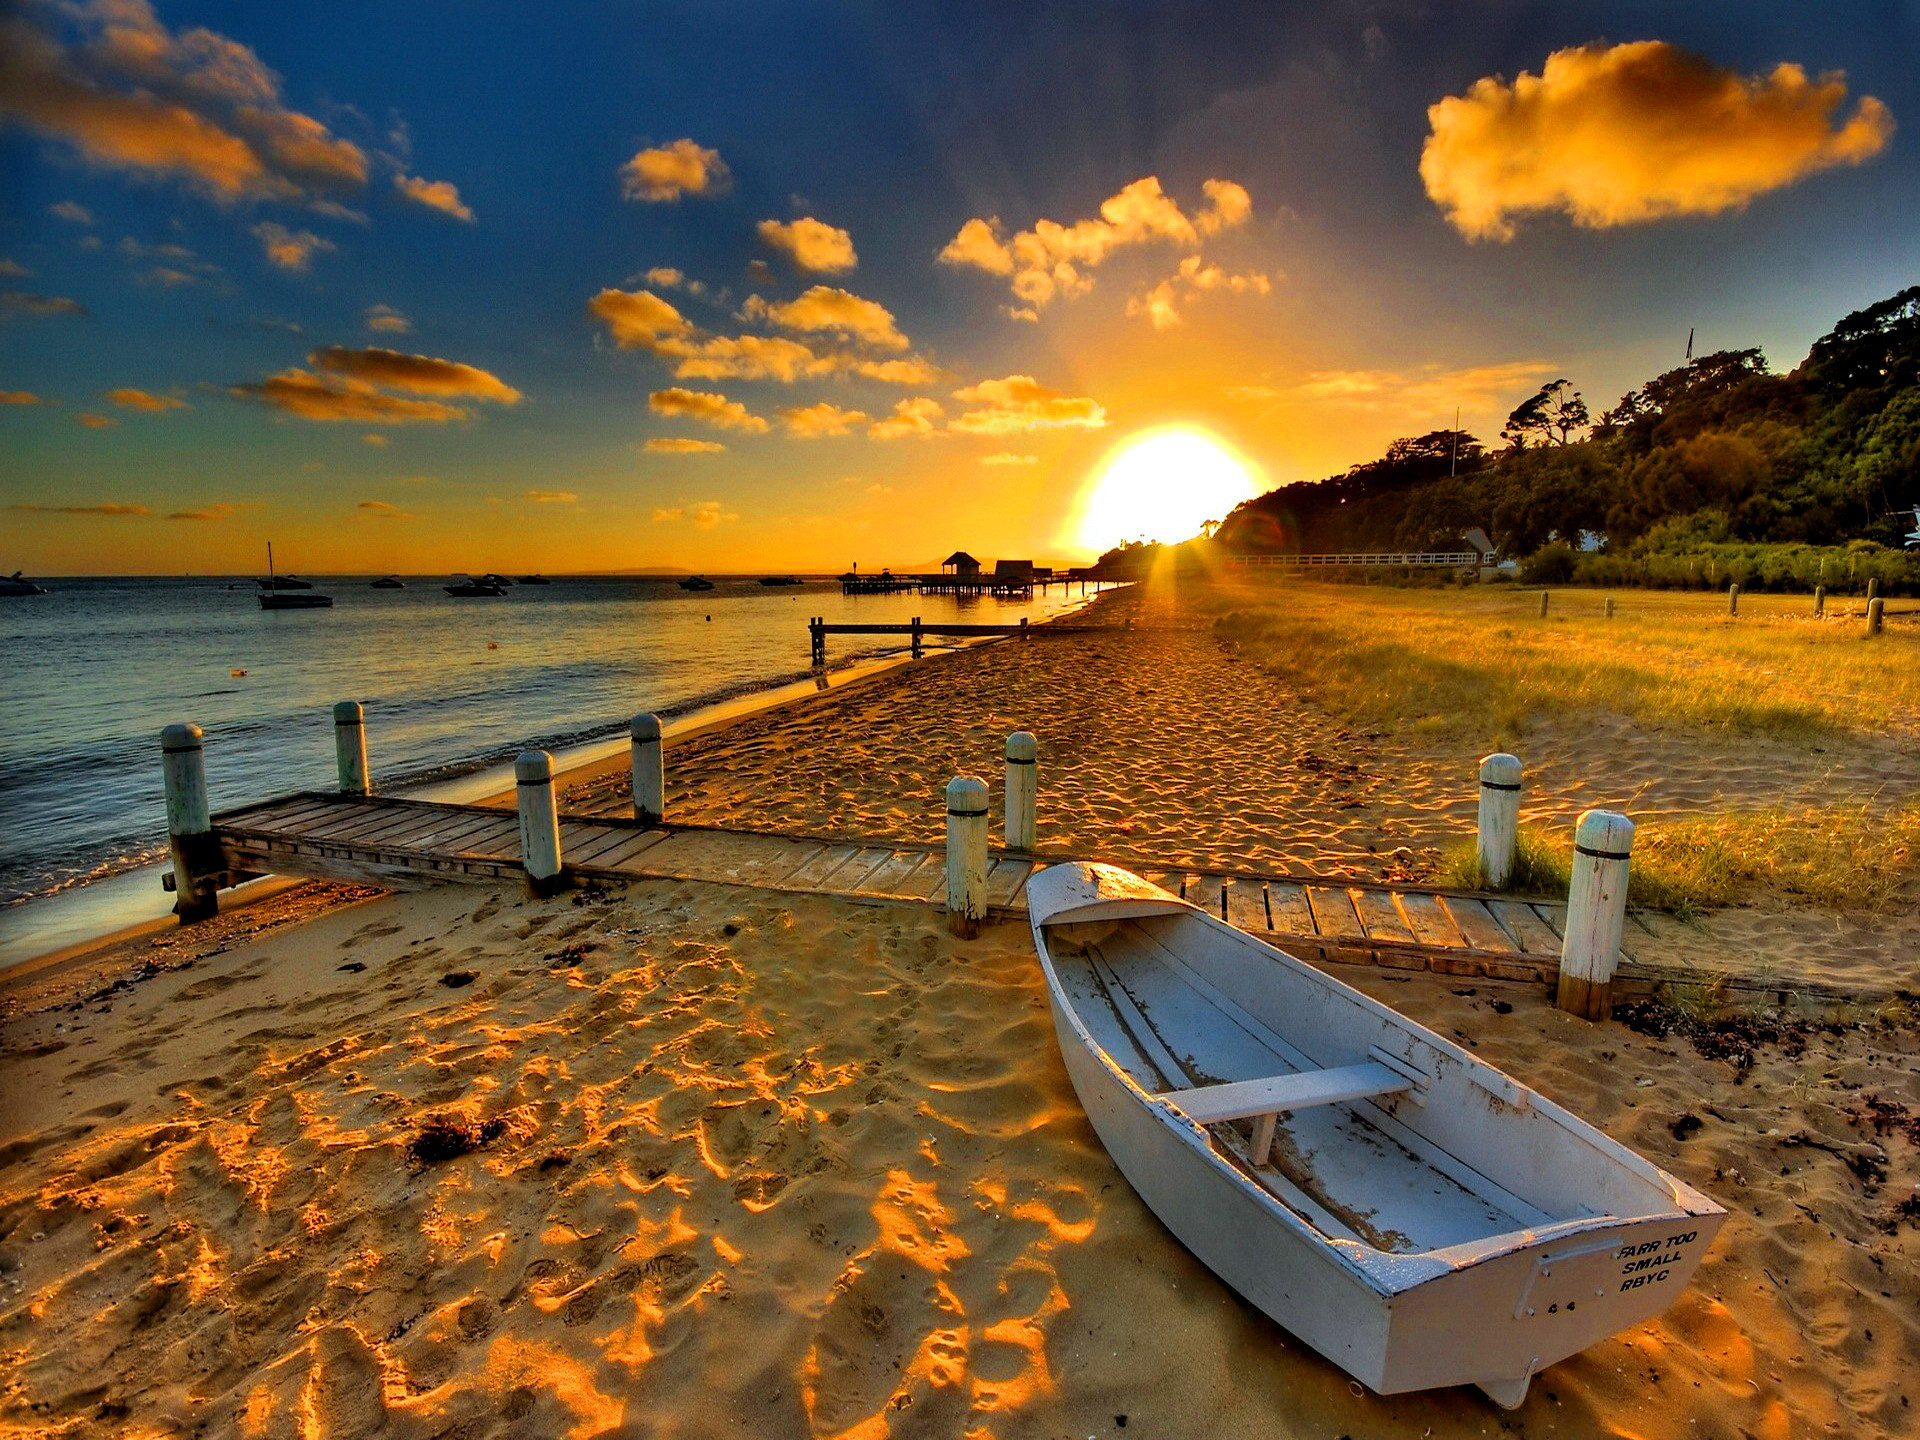 Beach Sunset Wallpaper: Find best latest Beach Sunset Wallpapers in HD for  your PC desktop